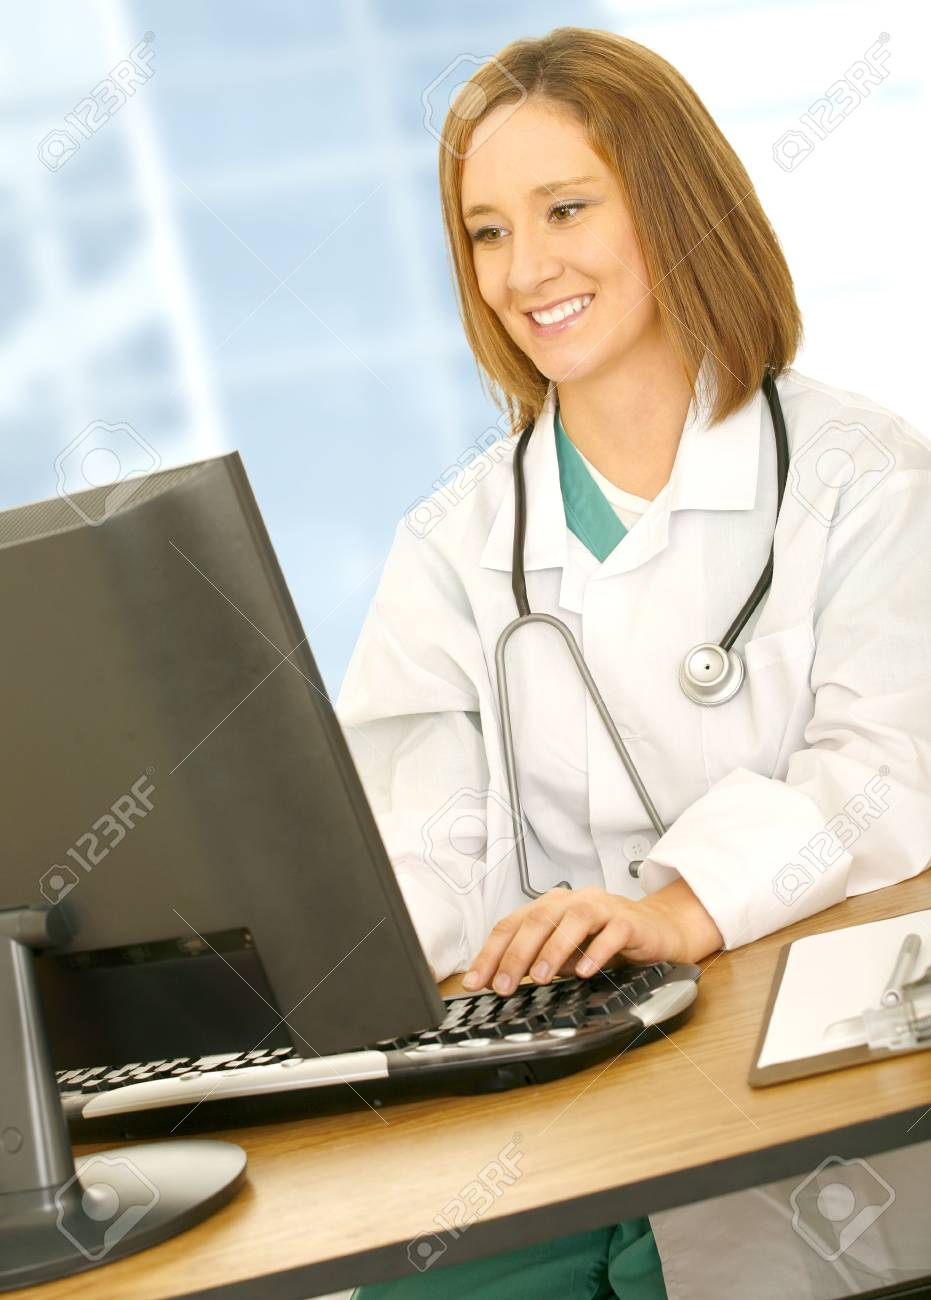 office jobs in the medical field